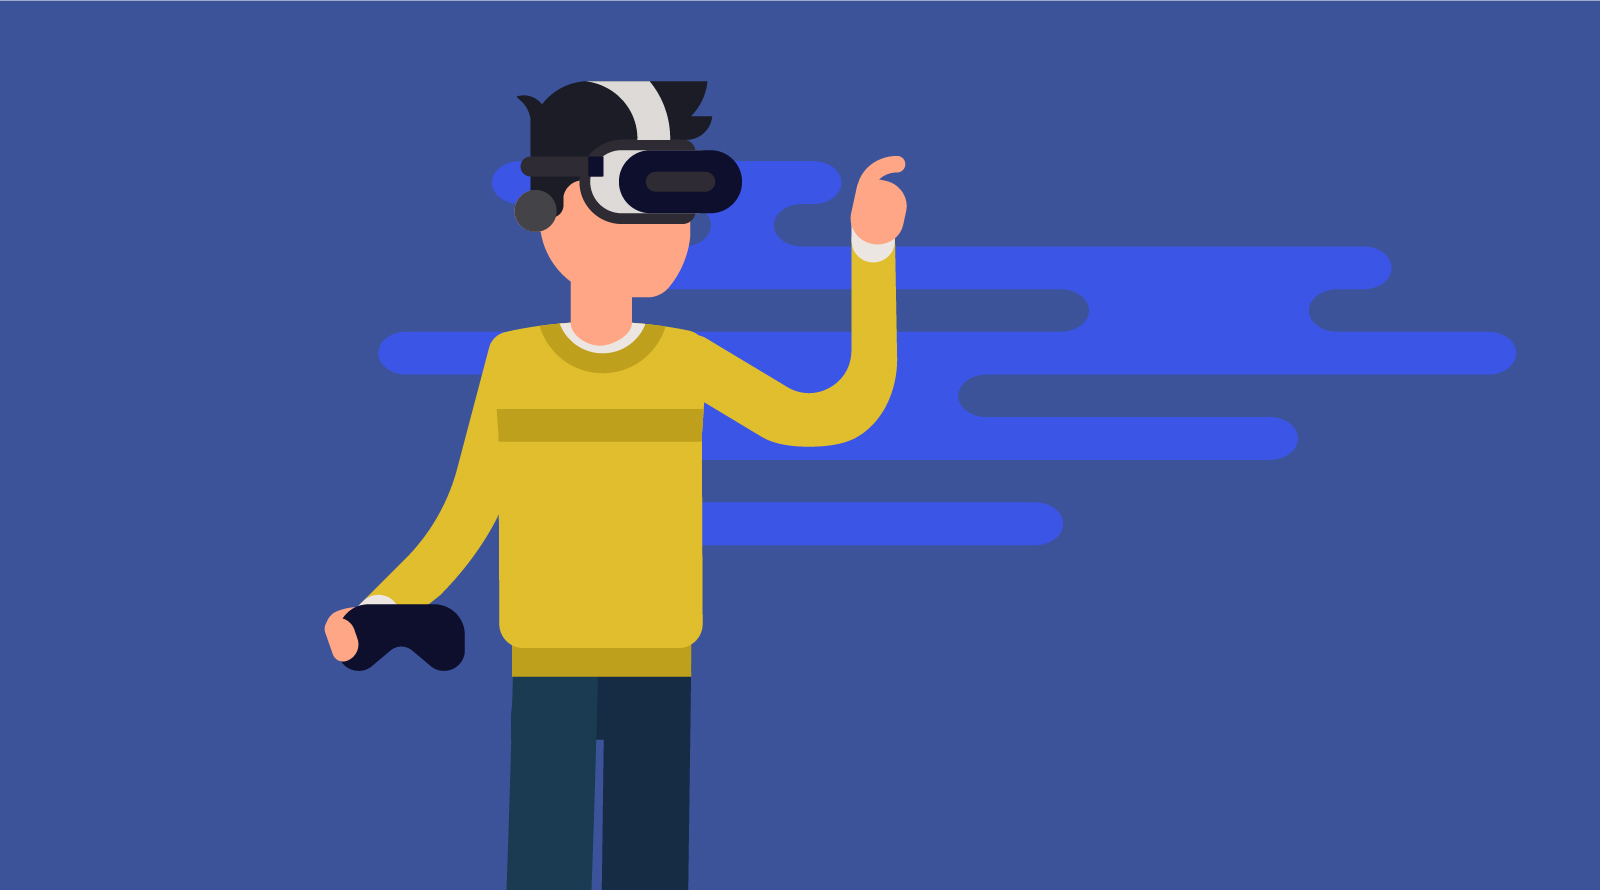 A man wearing a VR headset and holding a game controller in one hand. His other hand is reaching for something we cannot see.